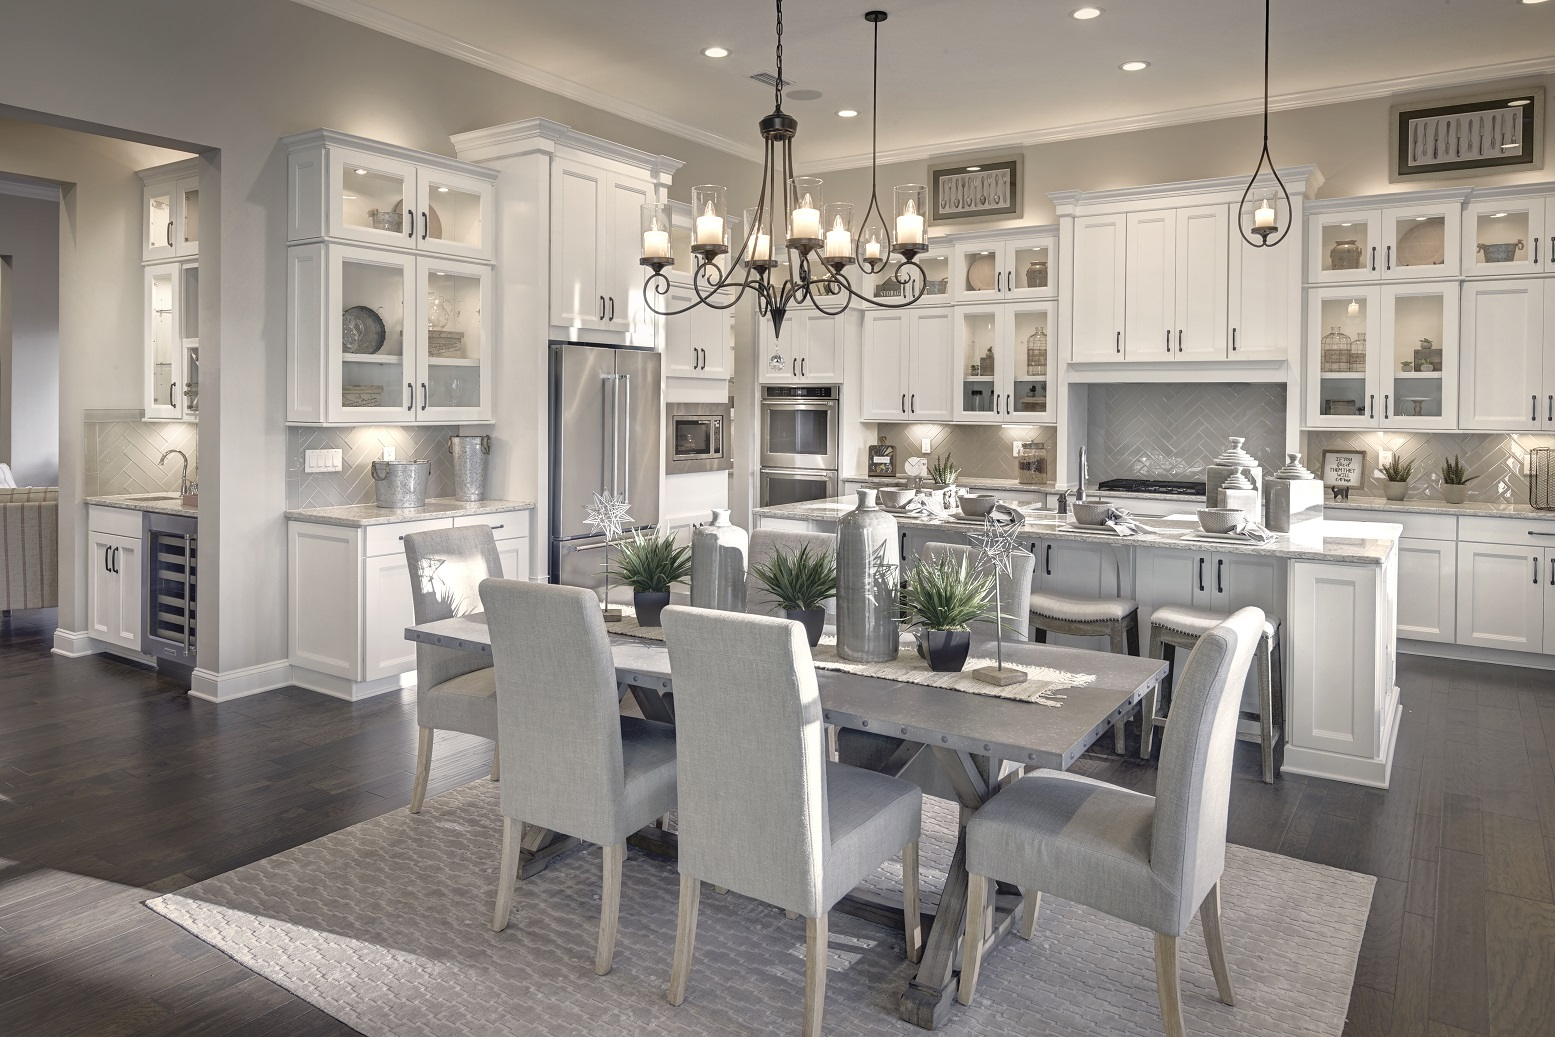 mattamy homes rivertown has opened six new decorated model homes featuring new open and bright floorplans - Mattamy Homes Design Center